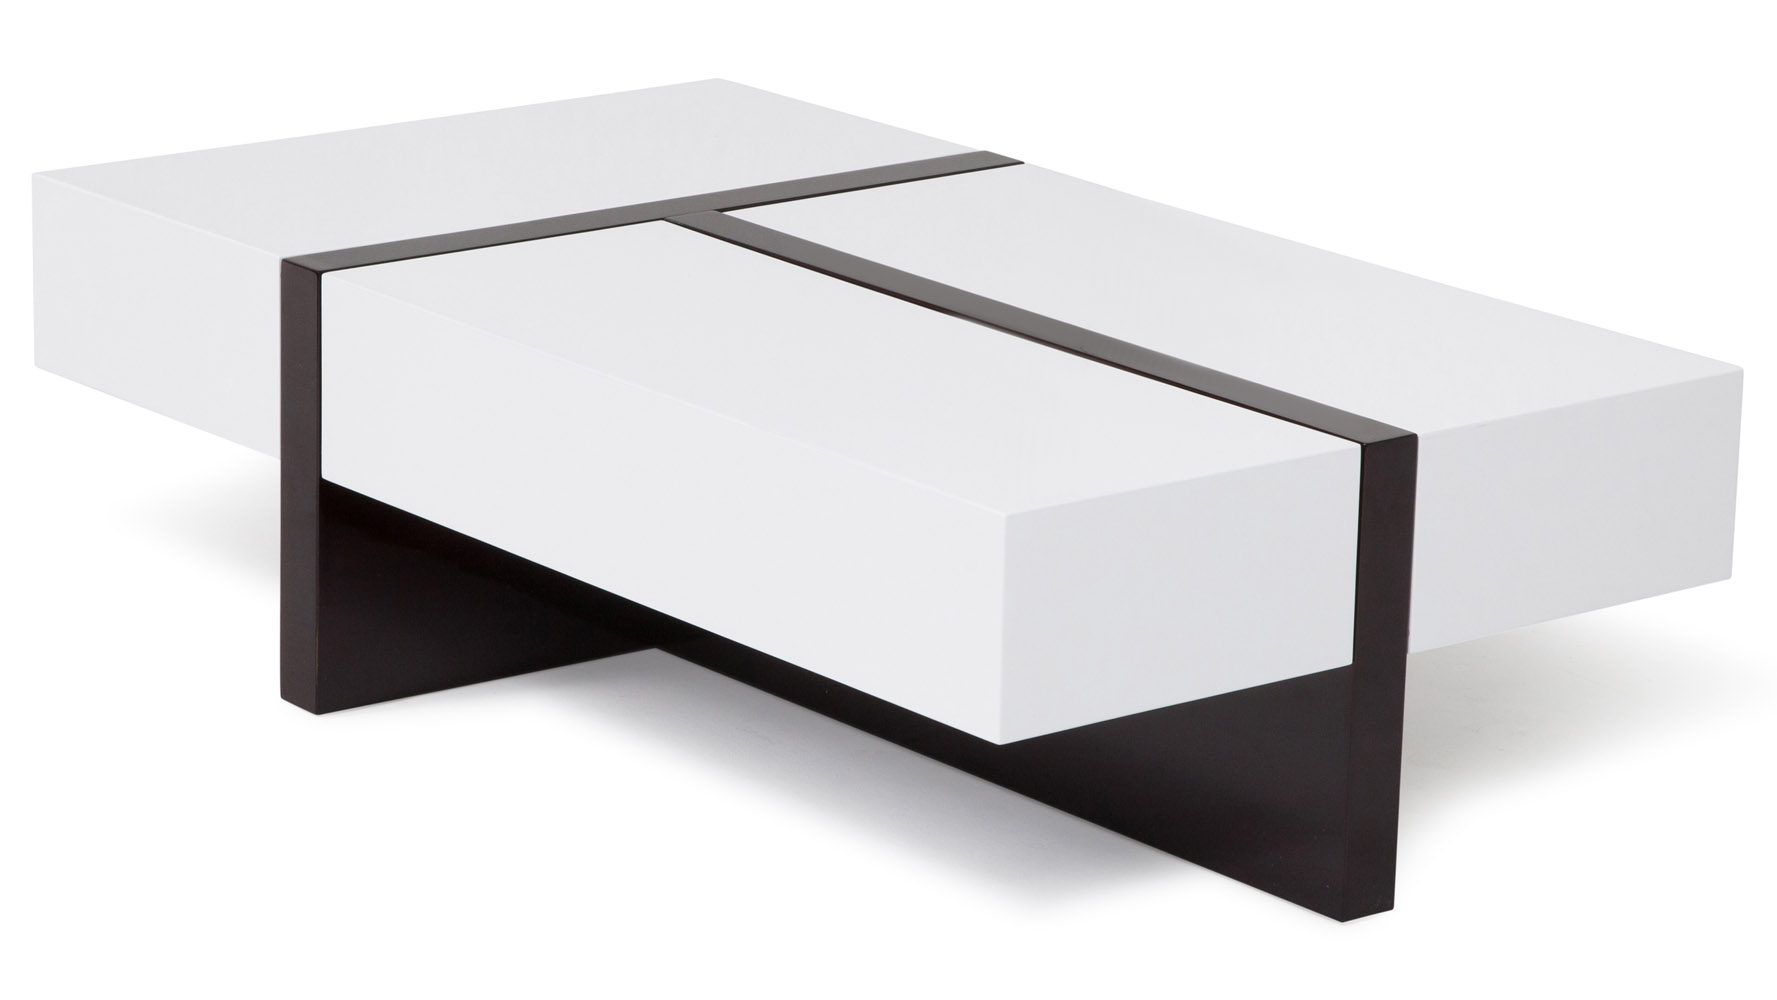 Mcintosh high gloss coffee table with storage white rectangle mcintosh high gloss coffee table with storage white rectangle zuri furniture geotapseo Image collections